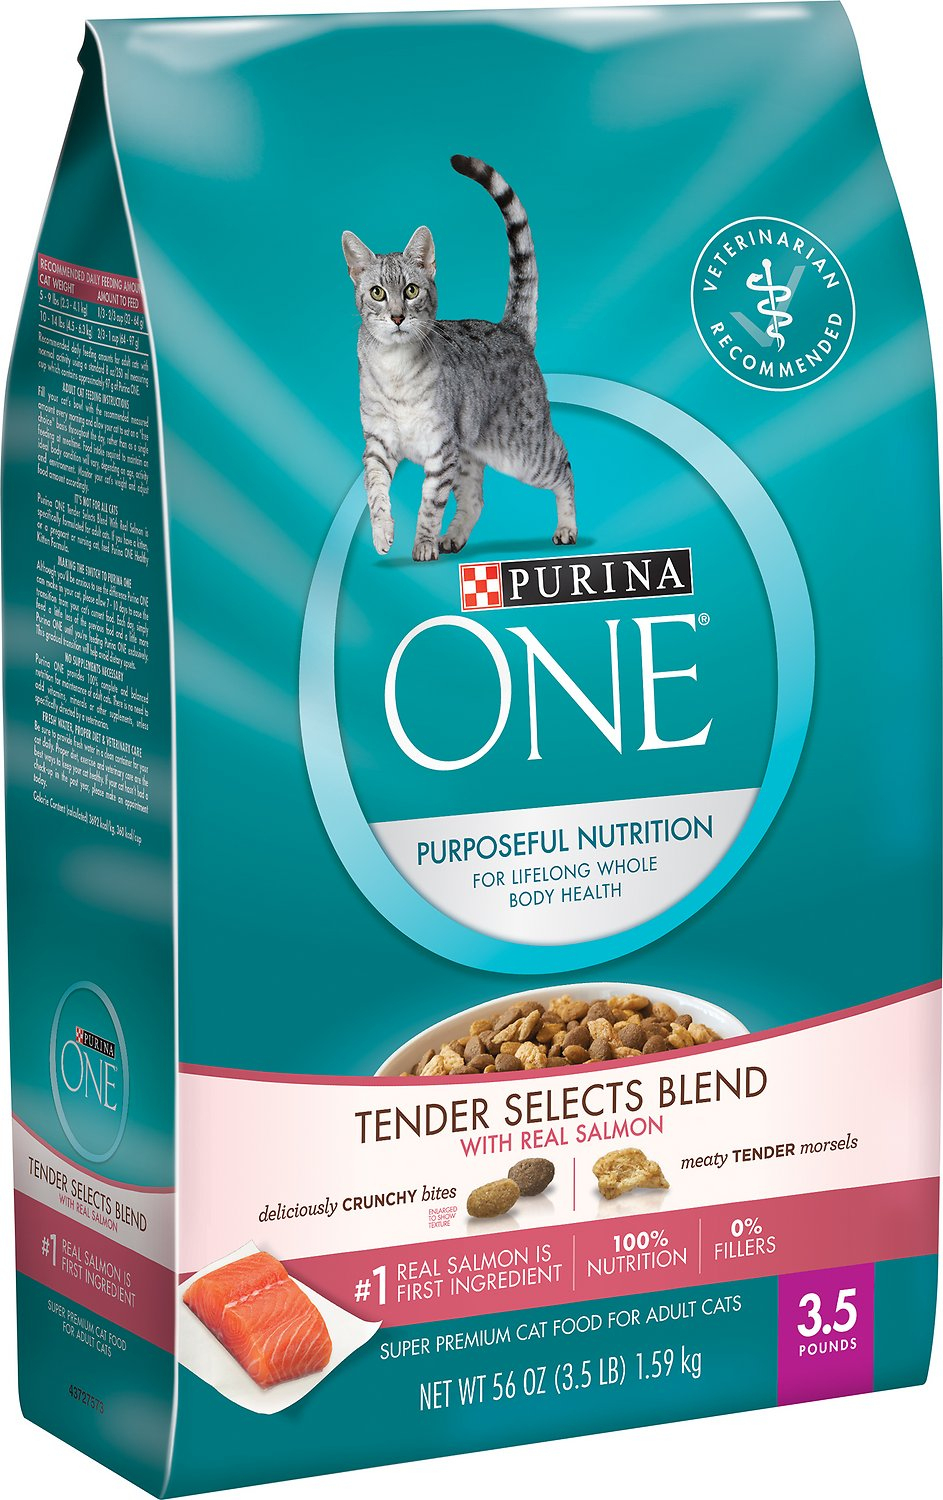 $1.50 Off Purina One Dry Cat Food Printable Coupon - Free Printable Coupons For Purina One Dog Food